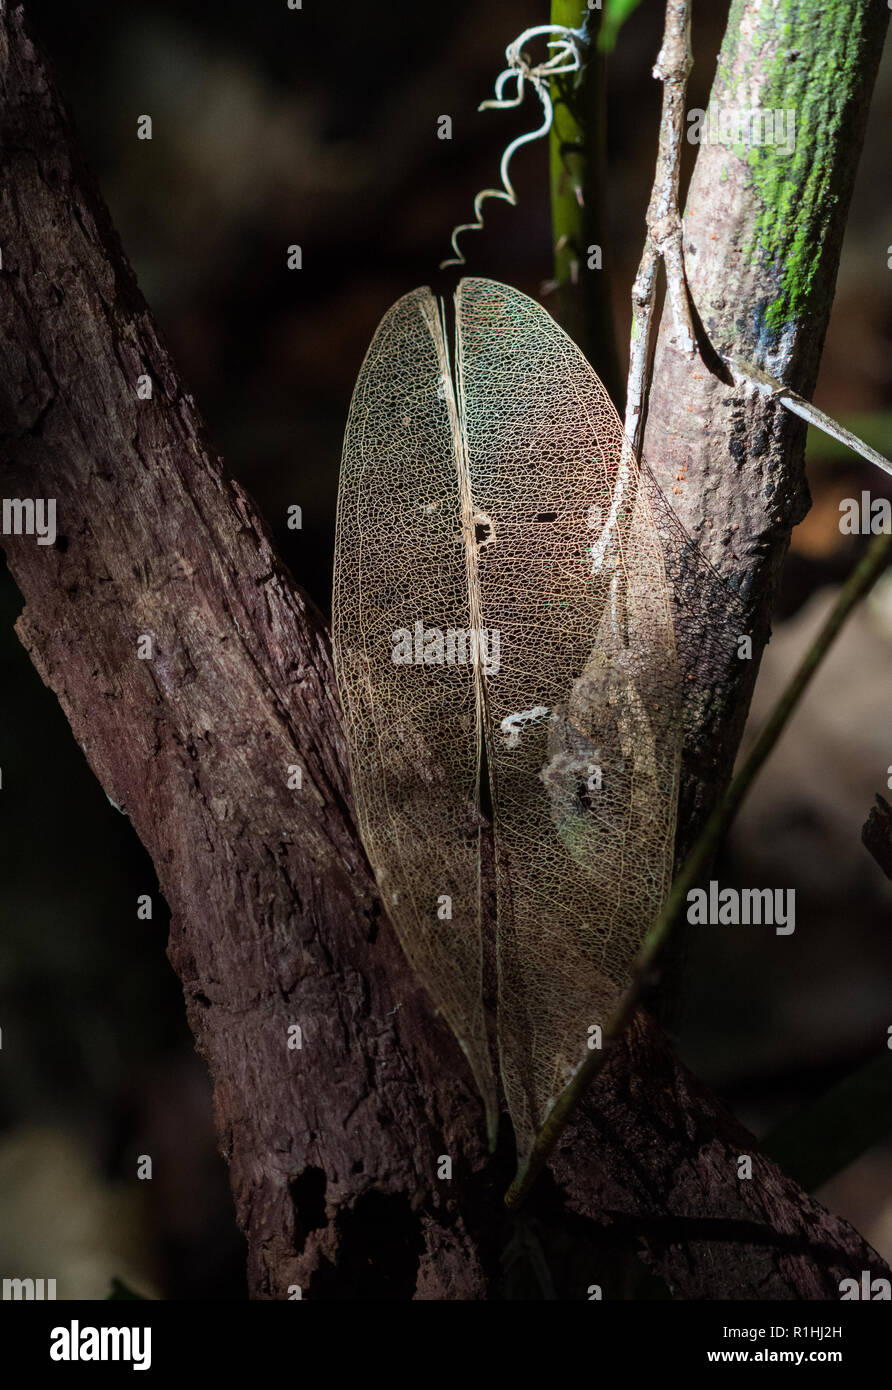 A decayed leaf with only veins preserved. Waigeo Island, Raja Ampat, Indonesia - Stock Image